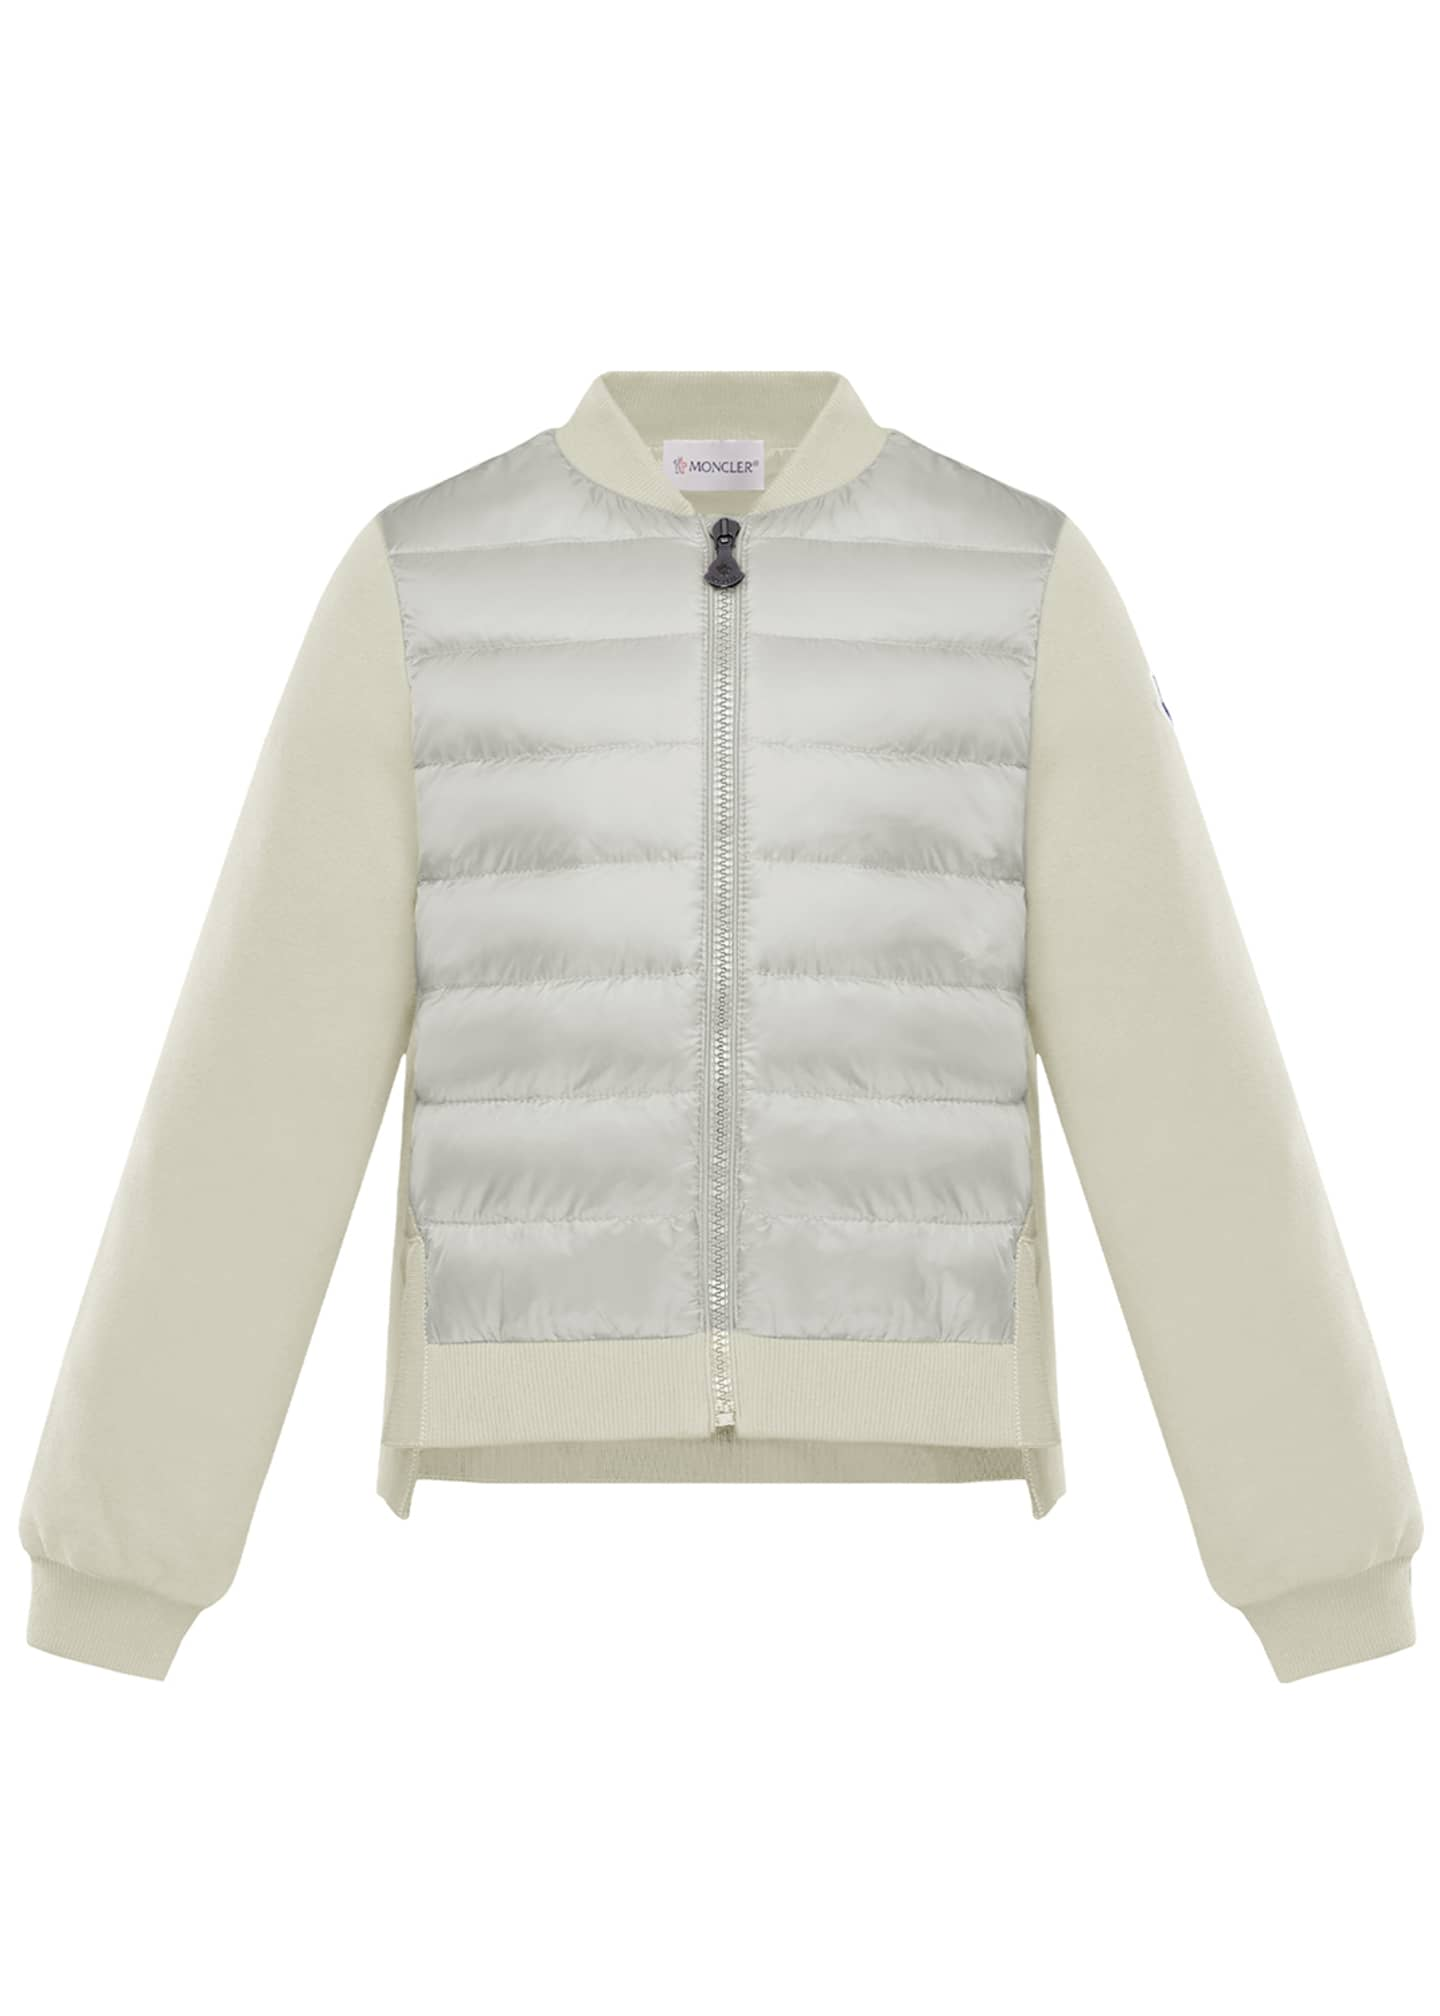 Moncler Maglia Knit & Quilted Combo Jacket, Size